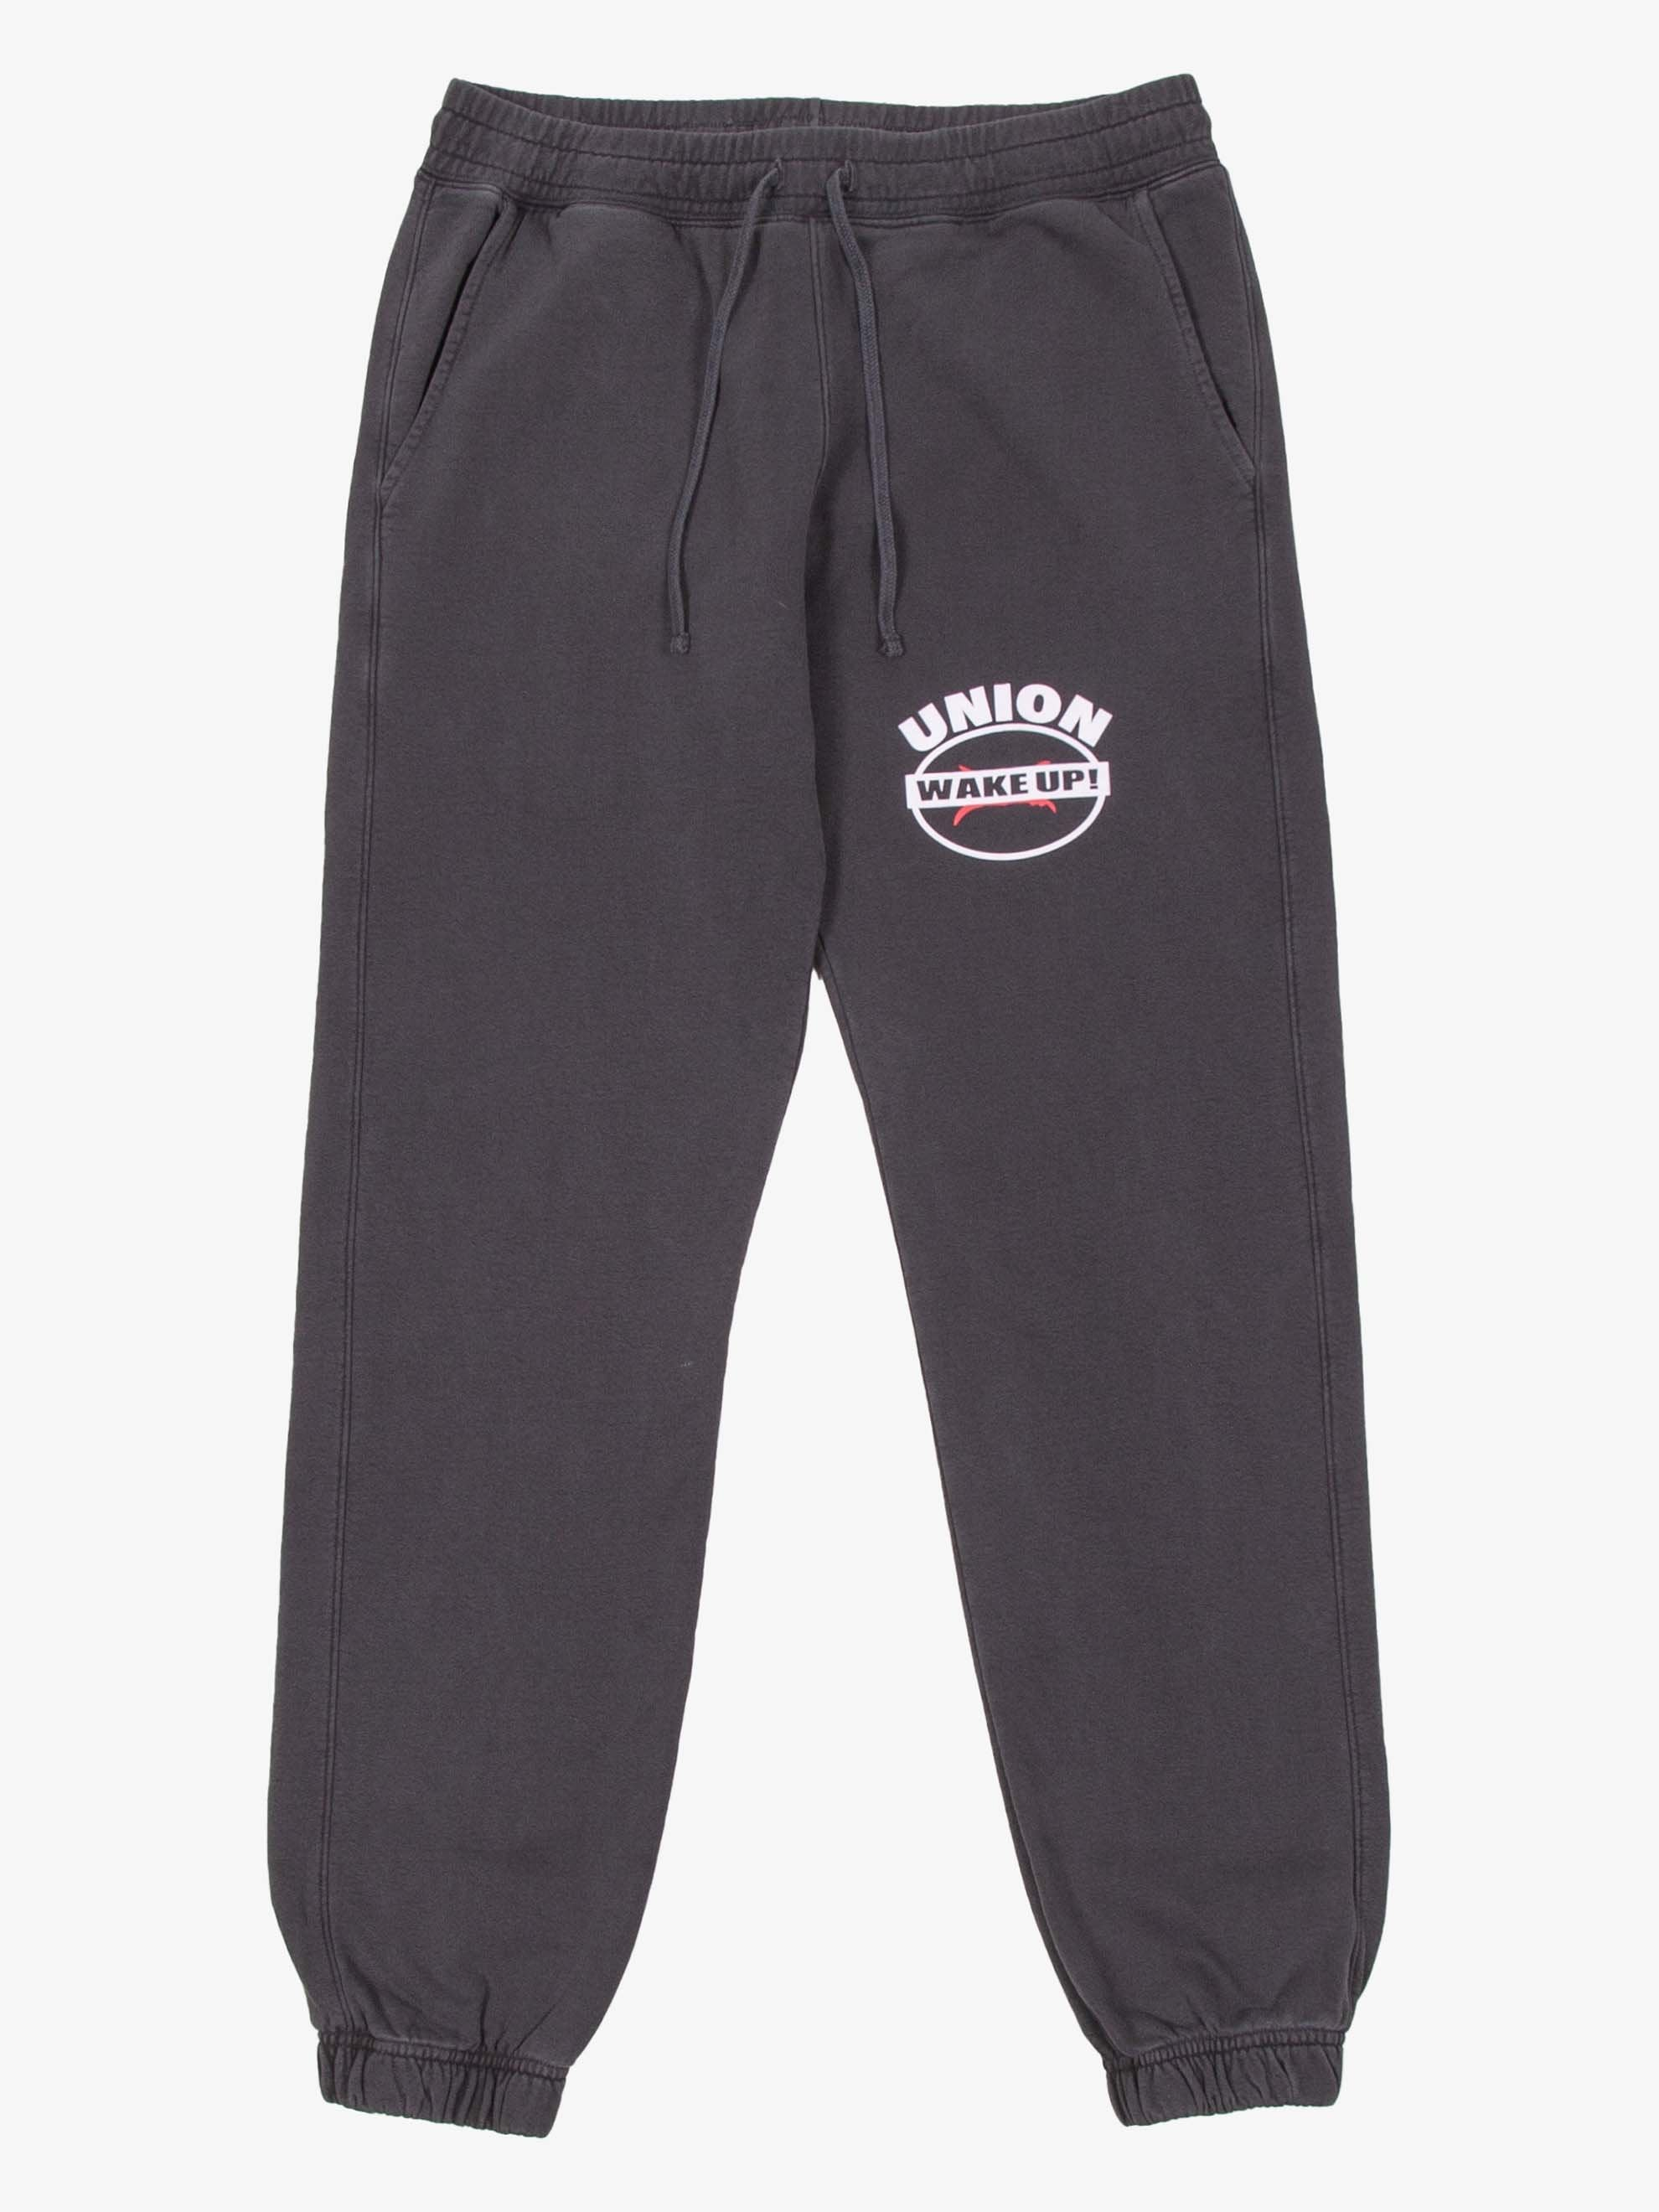 B.D.F.U. Sweatpants